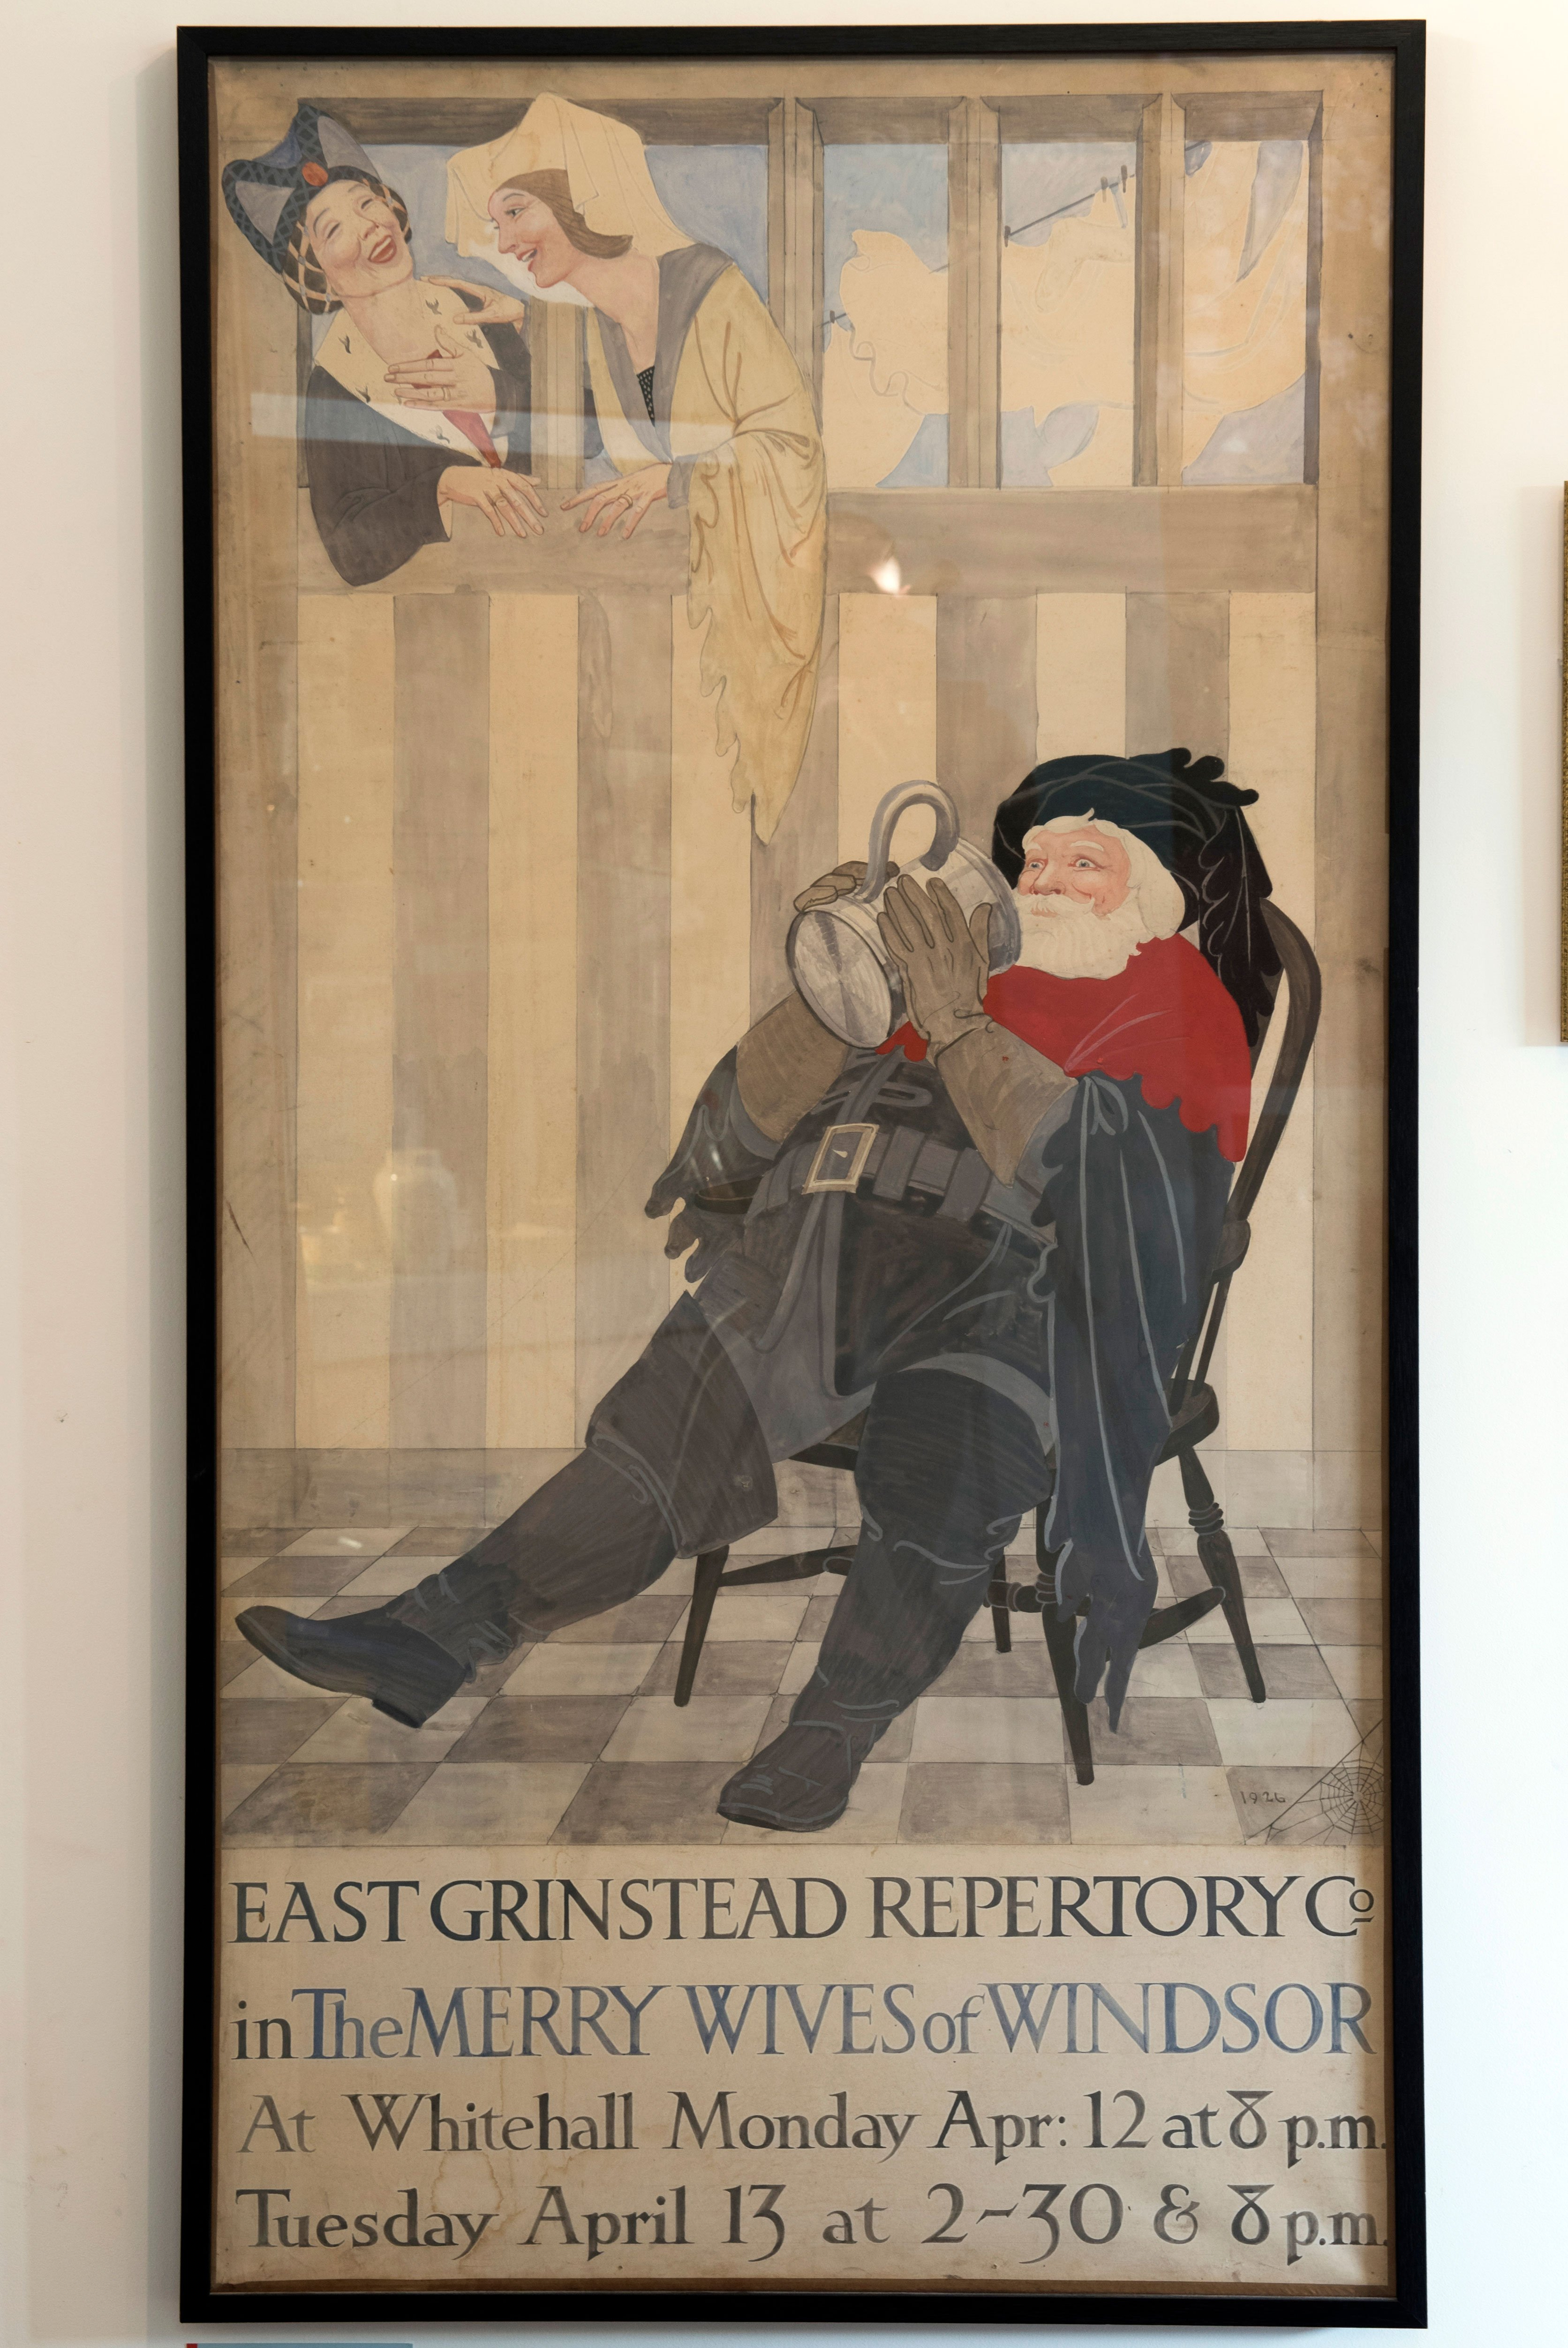 Merry Wives and Windsor – East Grinstead Museum